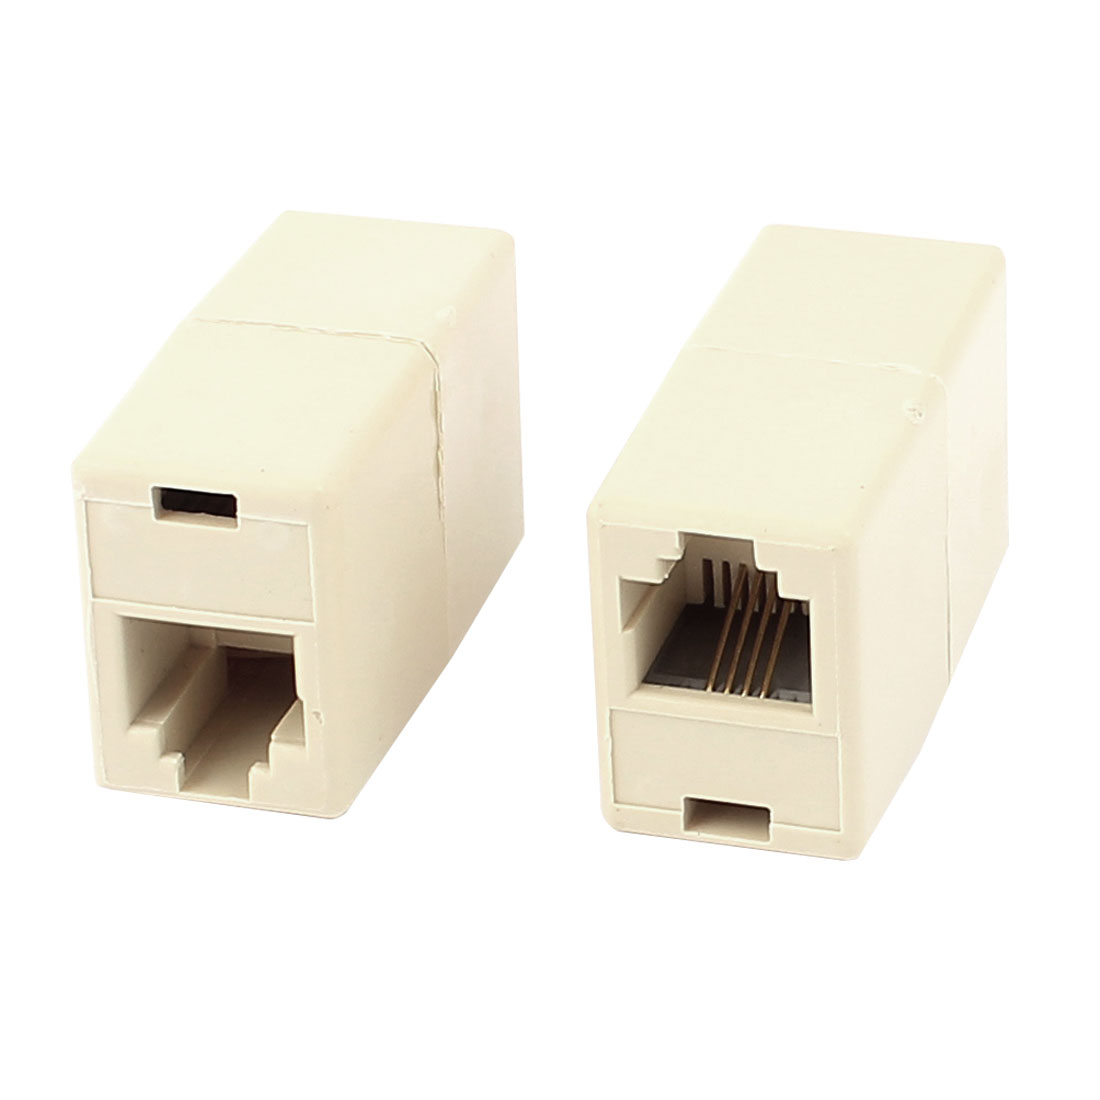 2 Pcs RJ11 6P4C Female to Female Telephone Line Connector Coupler